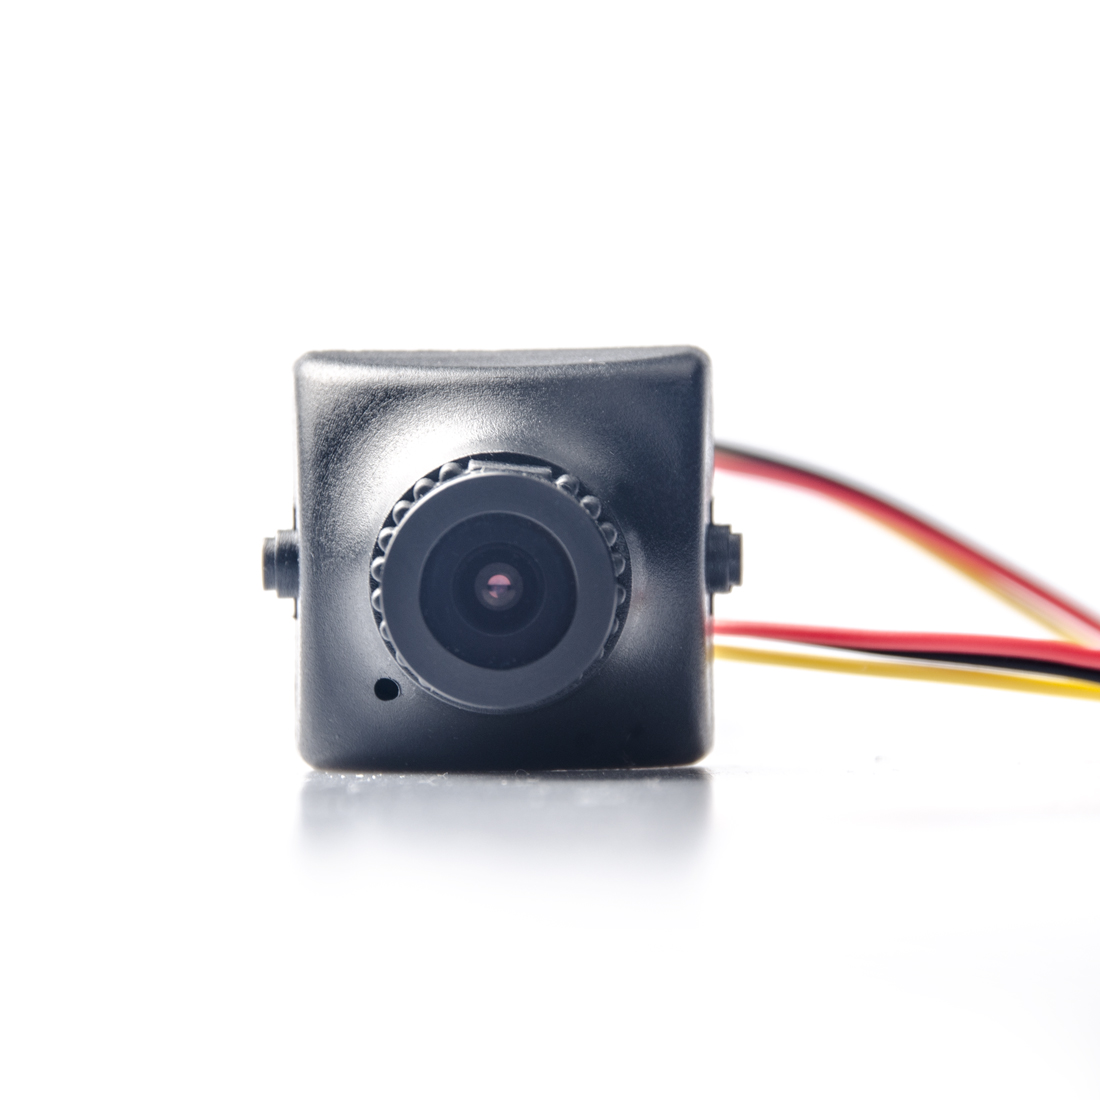 2.1-3.6mm FPV Camera 600TVL CCD Low Power Lens 12V NTSC for Racing Drone Multicopter